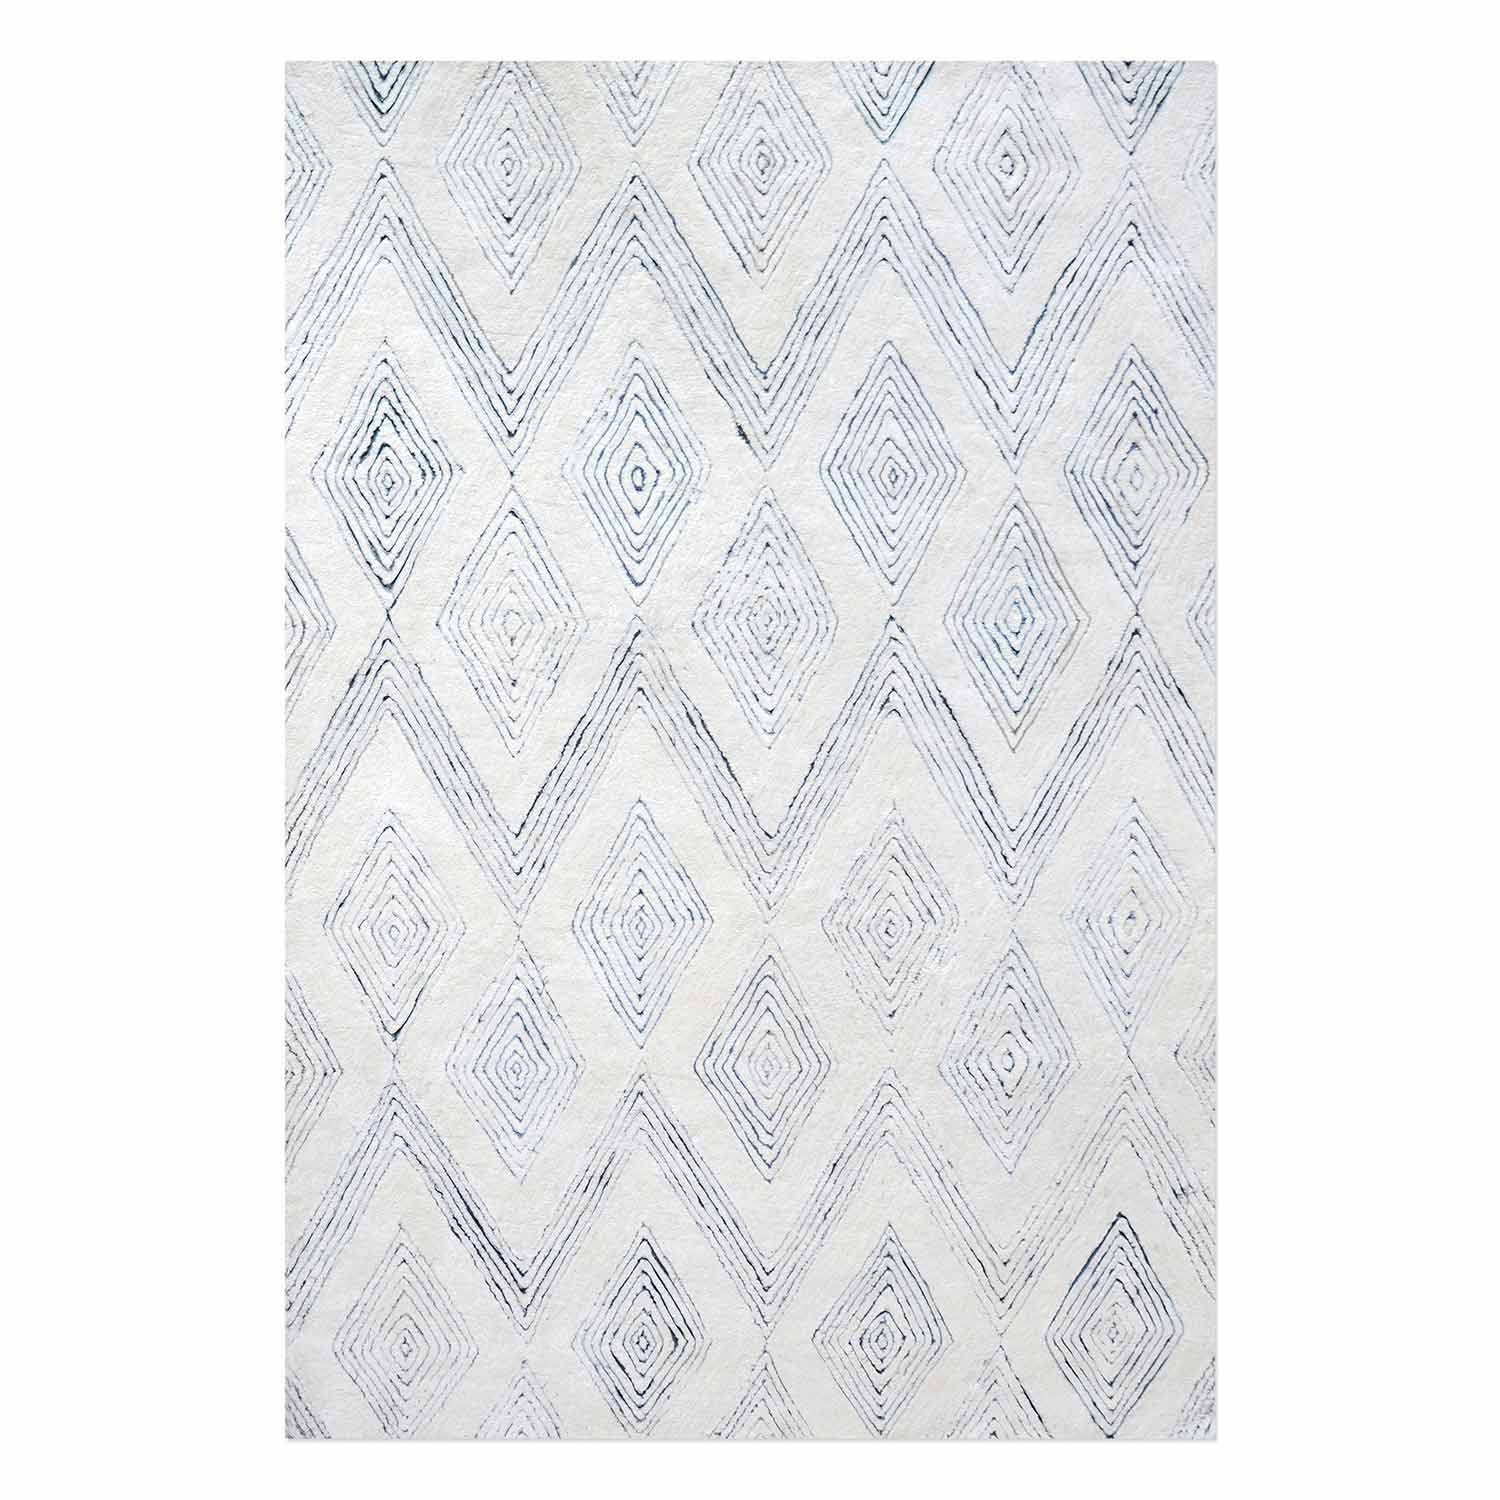 Uttermost Marcus 8 x 10 Rug - Ivory